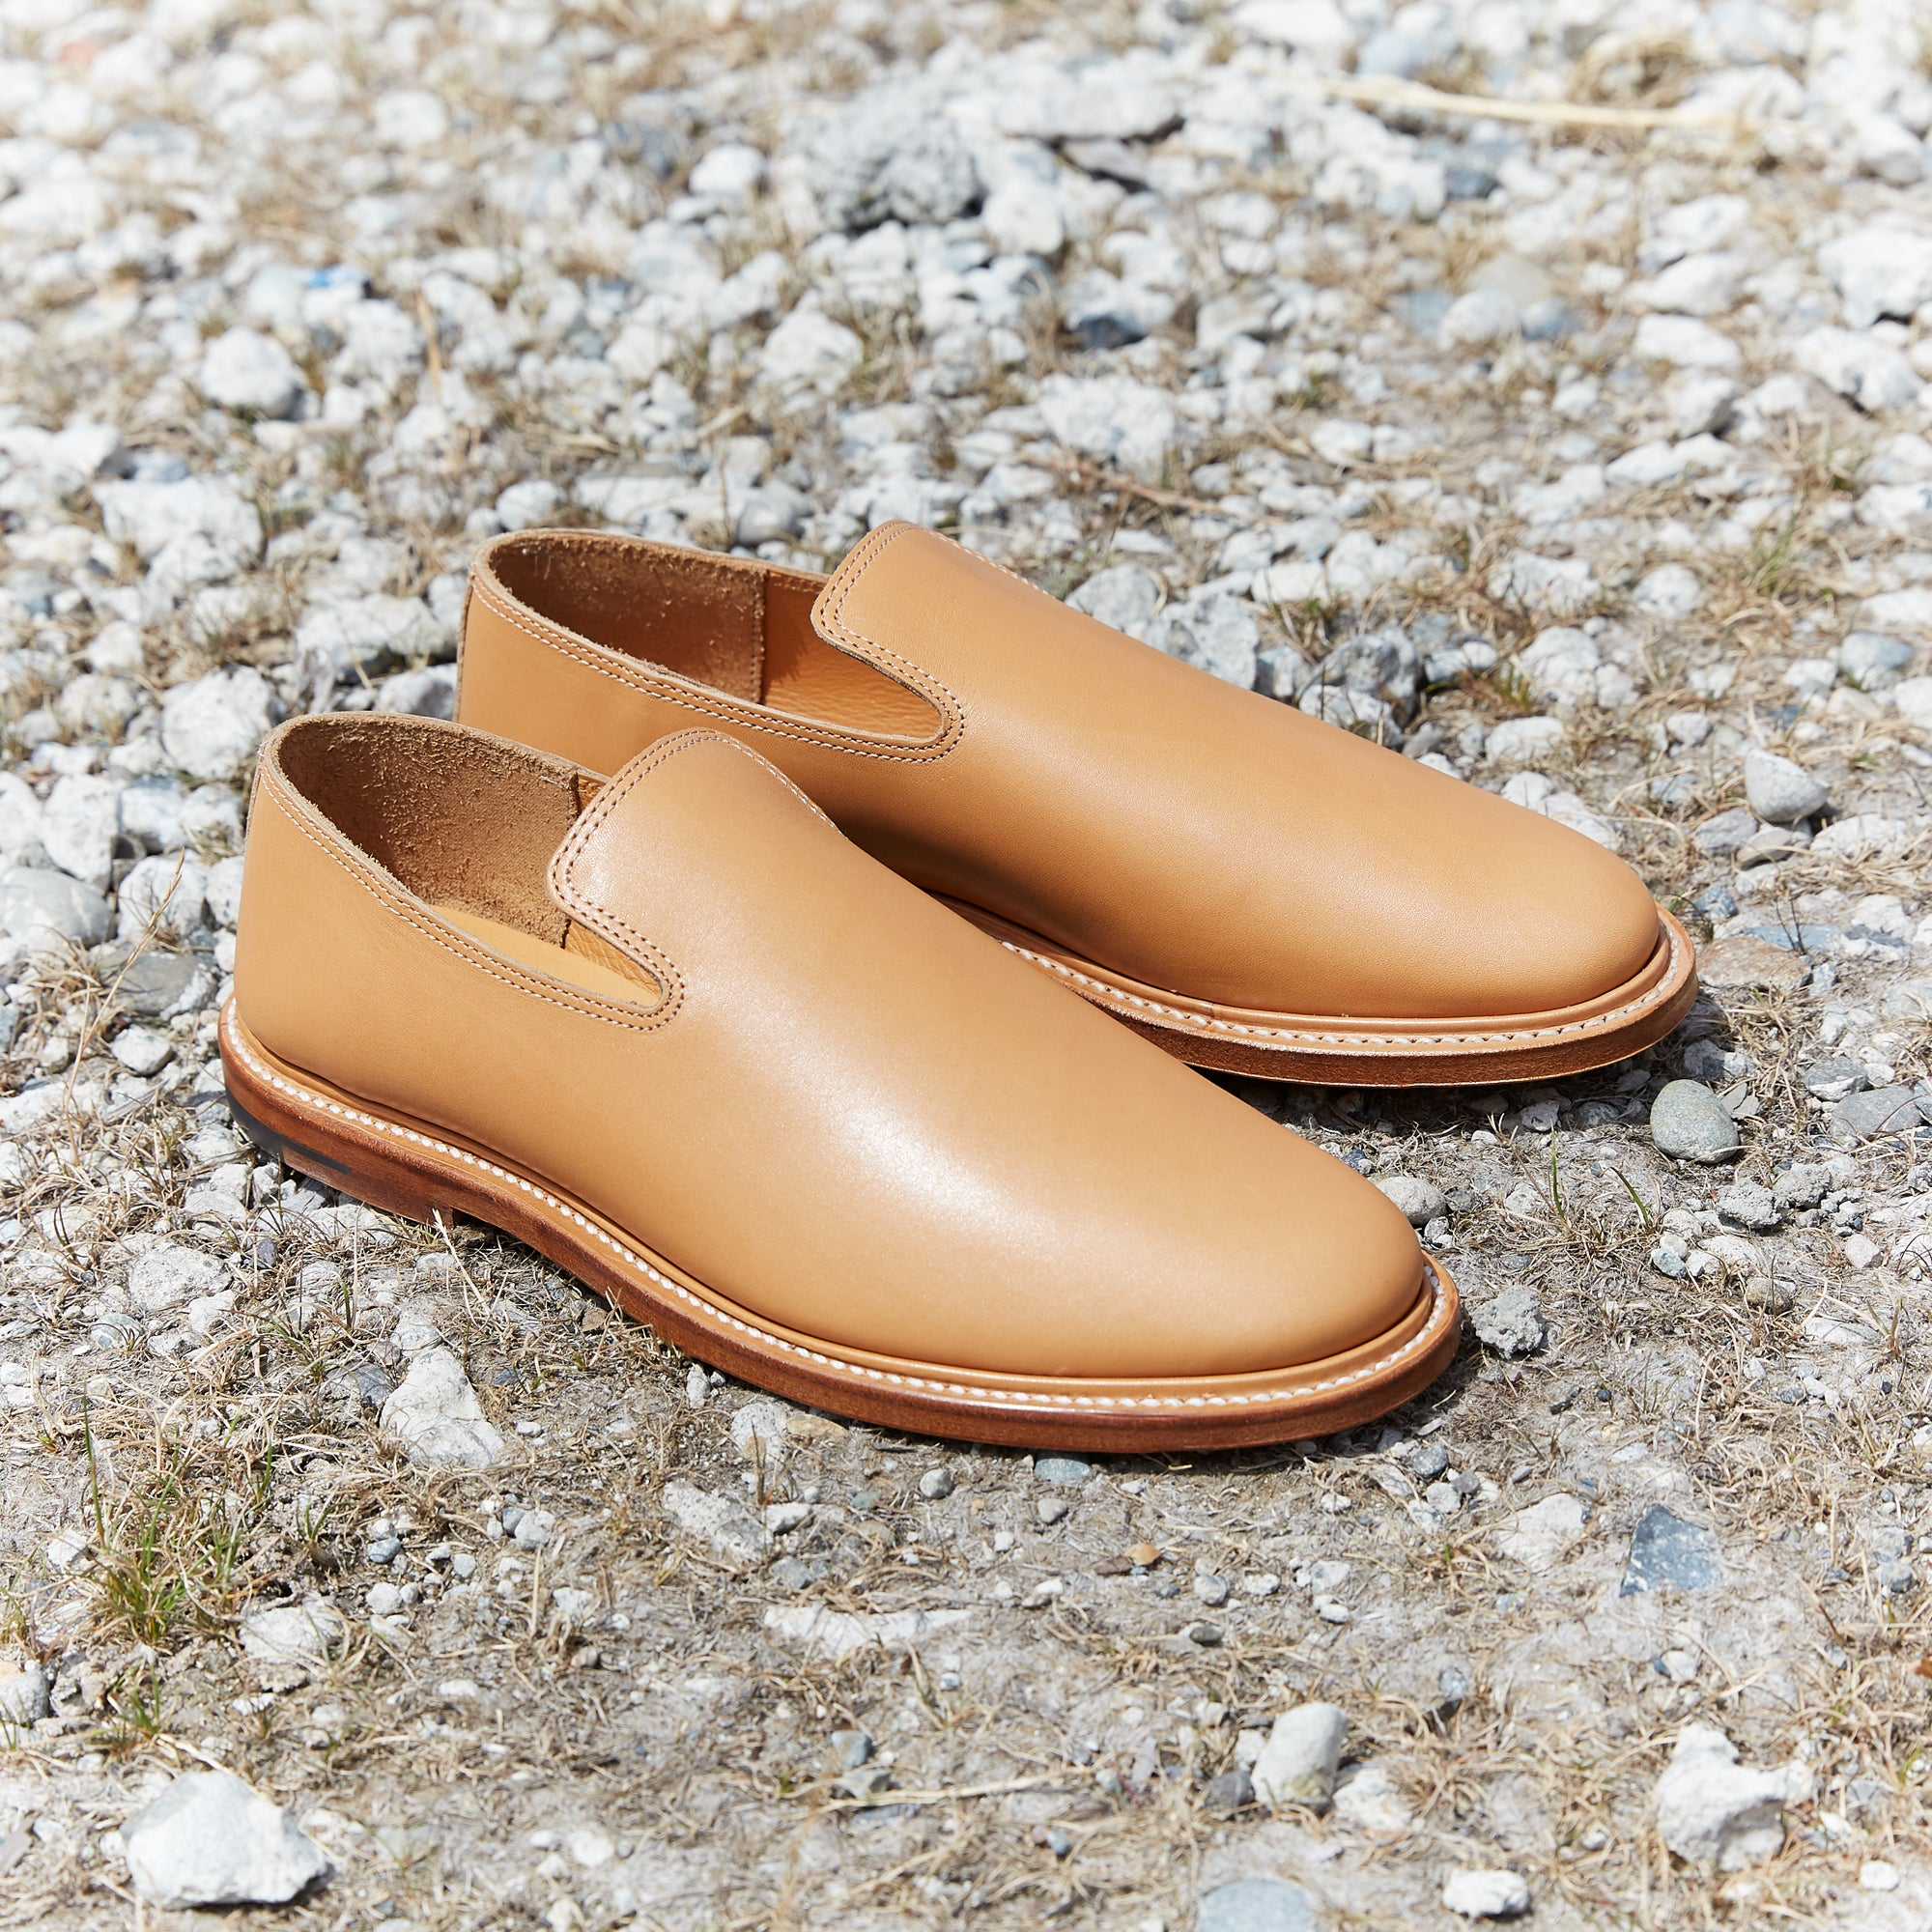 Division Road Viberg SS20 Natural Japanese Calf Slipper